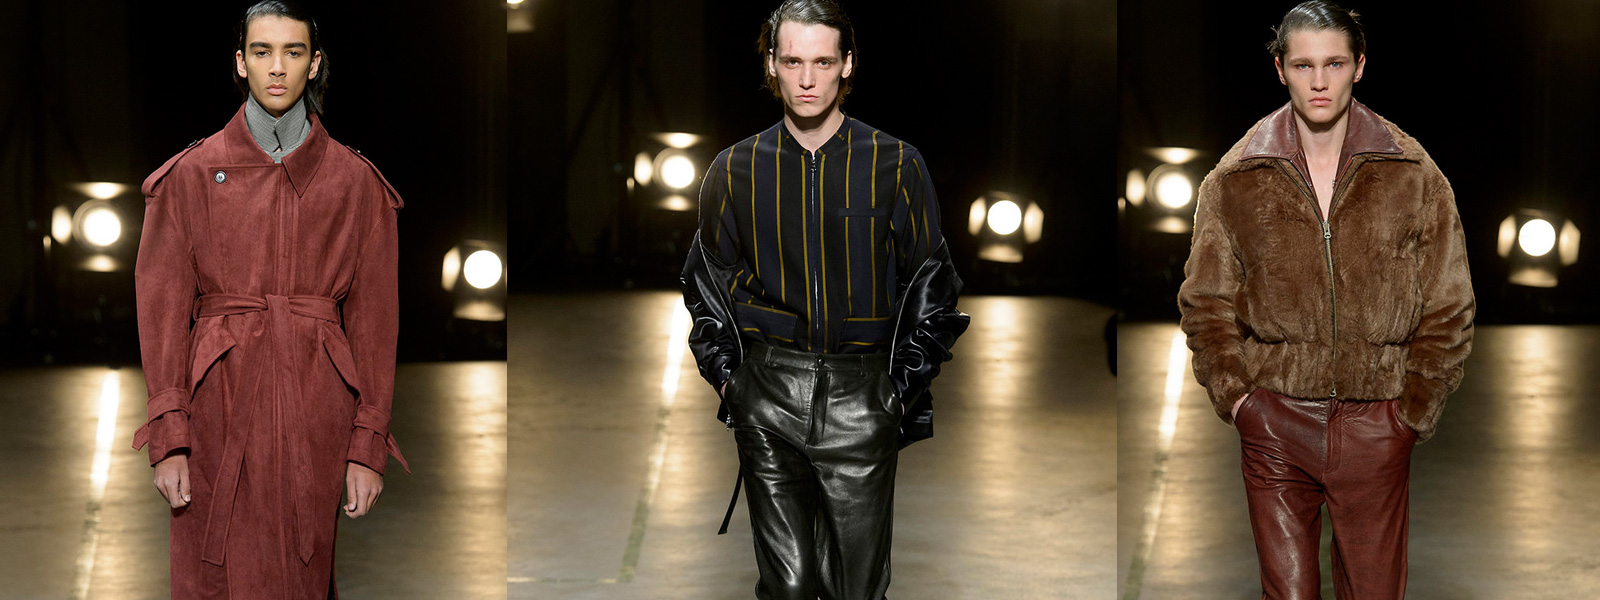 New Men's Brands to Watch Out